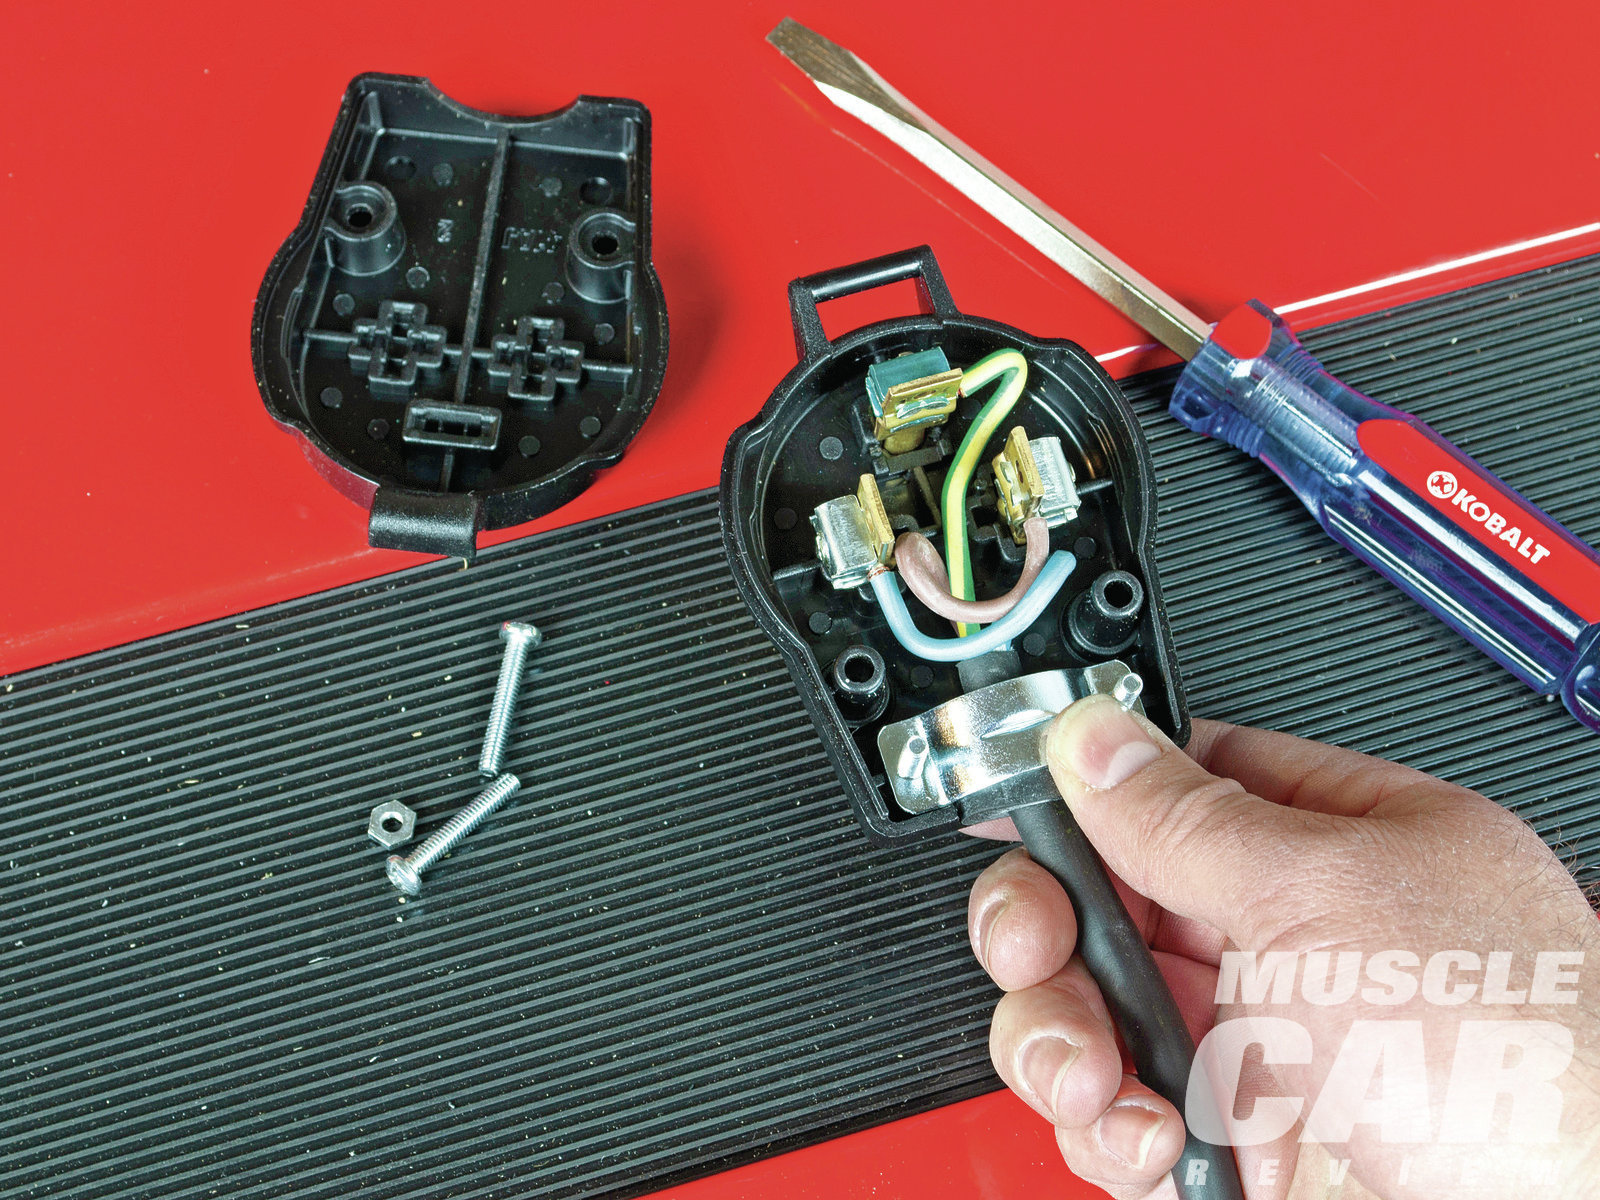 hight resolution of  life changing tools mig welder 50 amp plug life changing tools mig welder hot rod network eastwood mig 175 wiring diagram